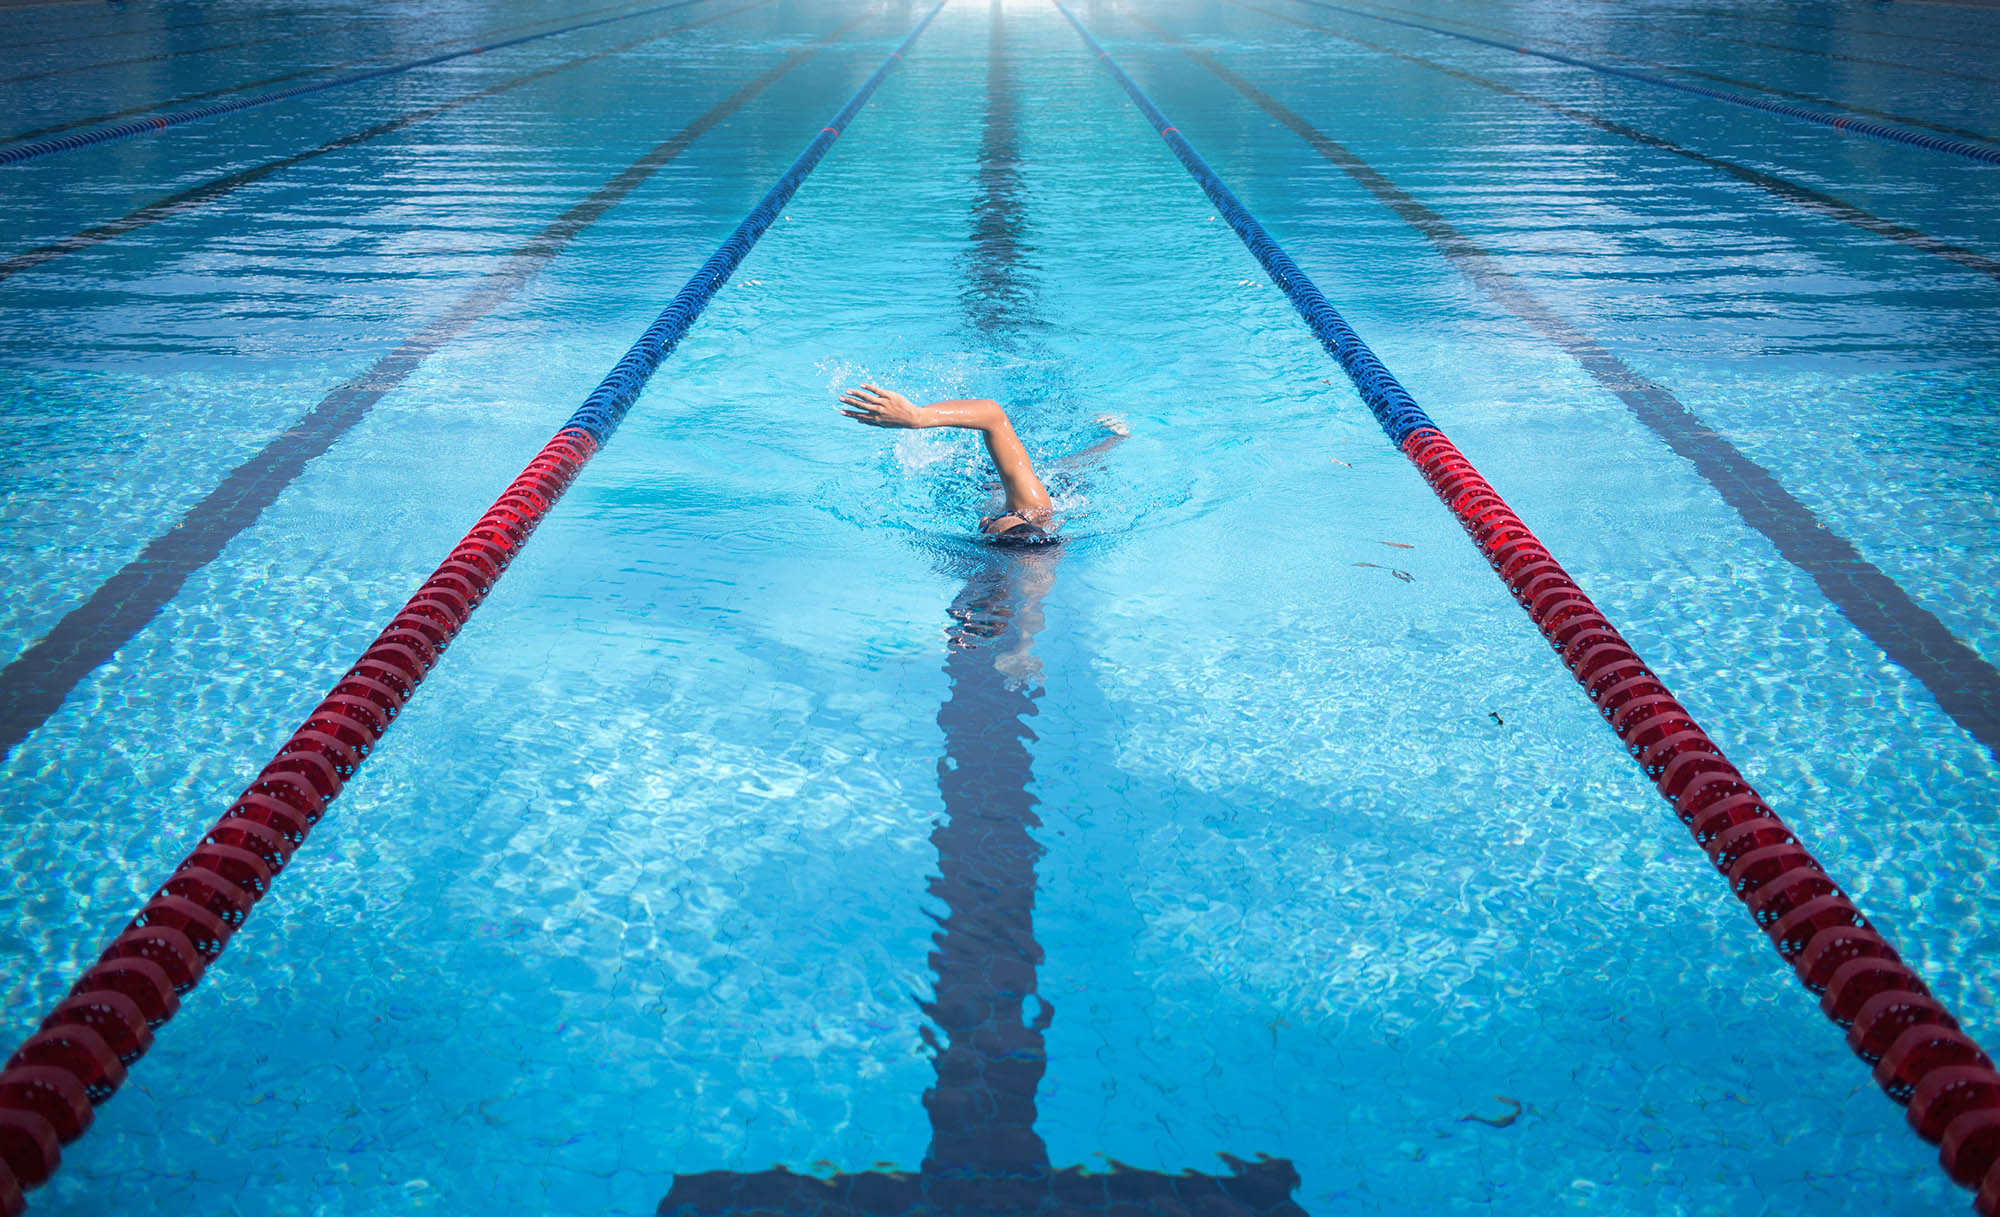 Legionnaires disease accidents in leisure centres compensation claims solicitors Aberdeen